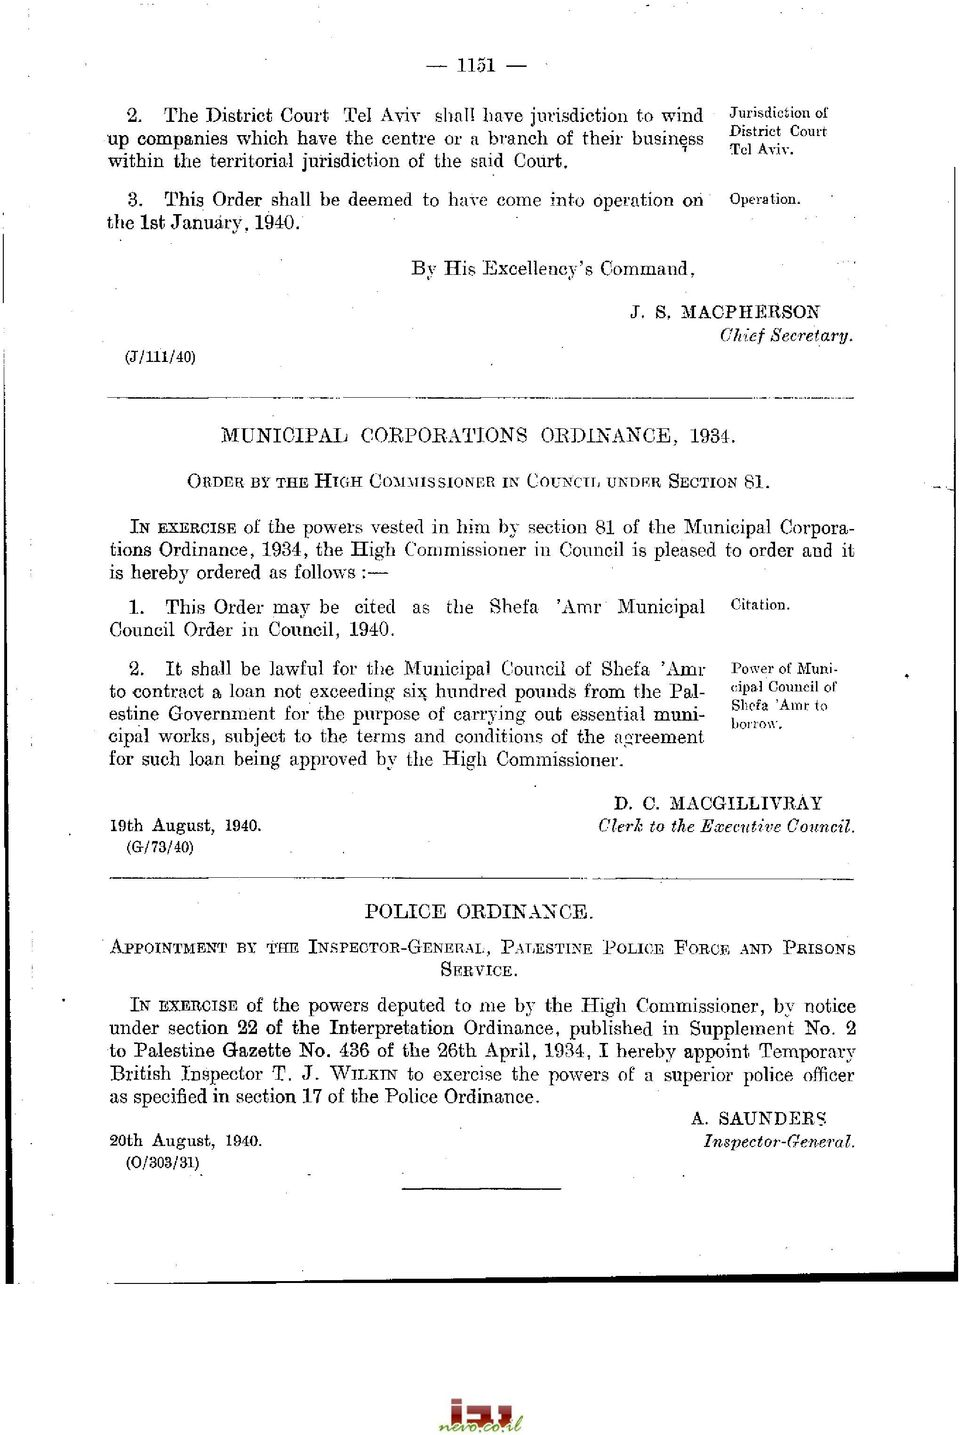 said Court. 3. This Order shall be deemed to have come into operation on Operation, the 1st January, 1940. By His Excellency's Command, (J/111/40) J. S. MACPHERSON Chief Secretary.